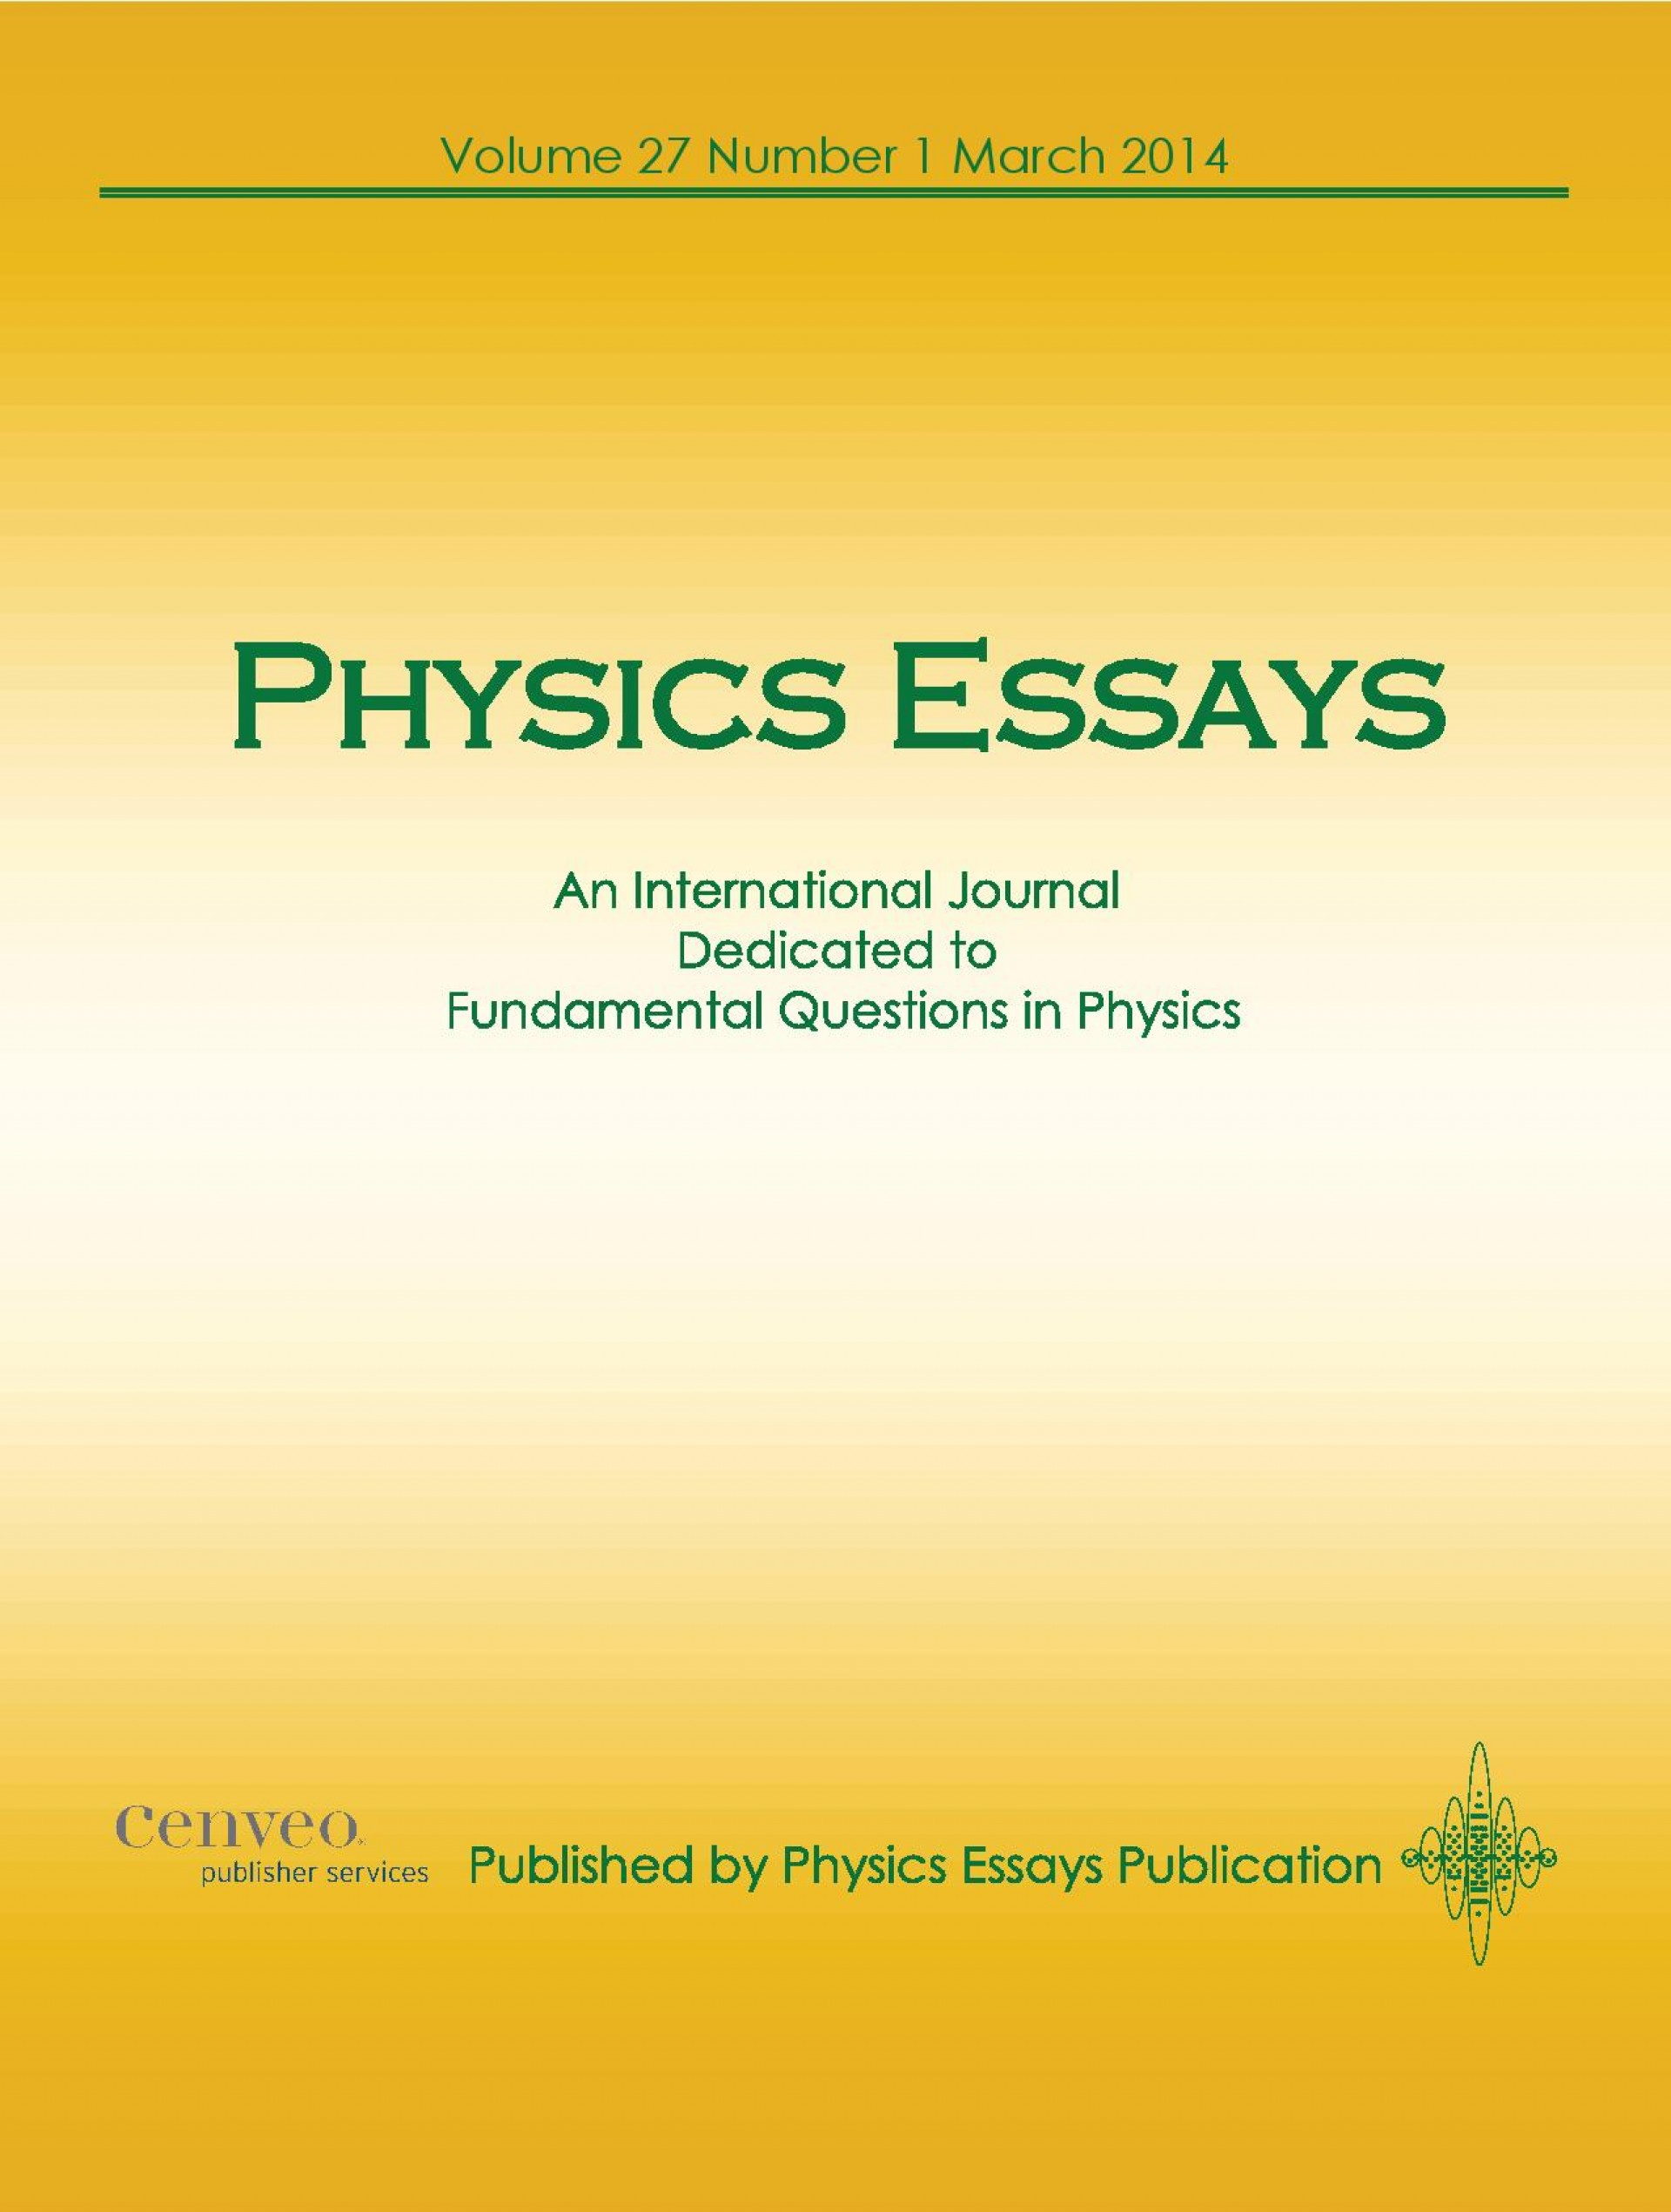 001 Cover 2014  Copy 2 Page Physics Essays Essay Rare Extended Topics Examples Wikipedia Crackpot1920